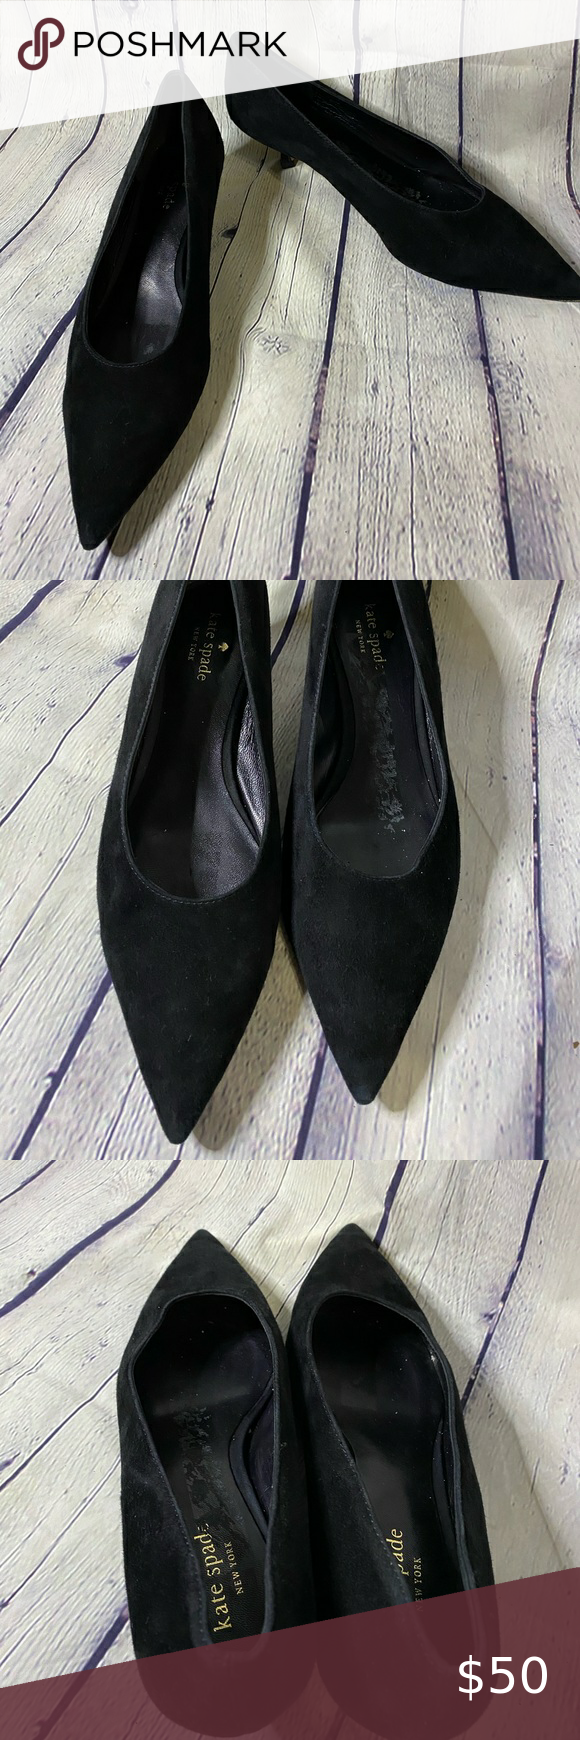 Kate Spade Black Microsuede Kitten Heel Pumps 9 5 In 2020 Kitten Heel Pumps Kitten Heels Pumps Heels